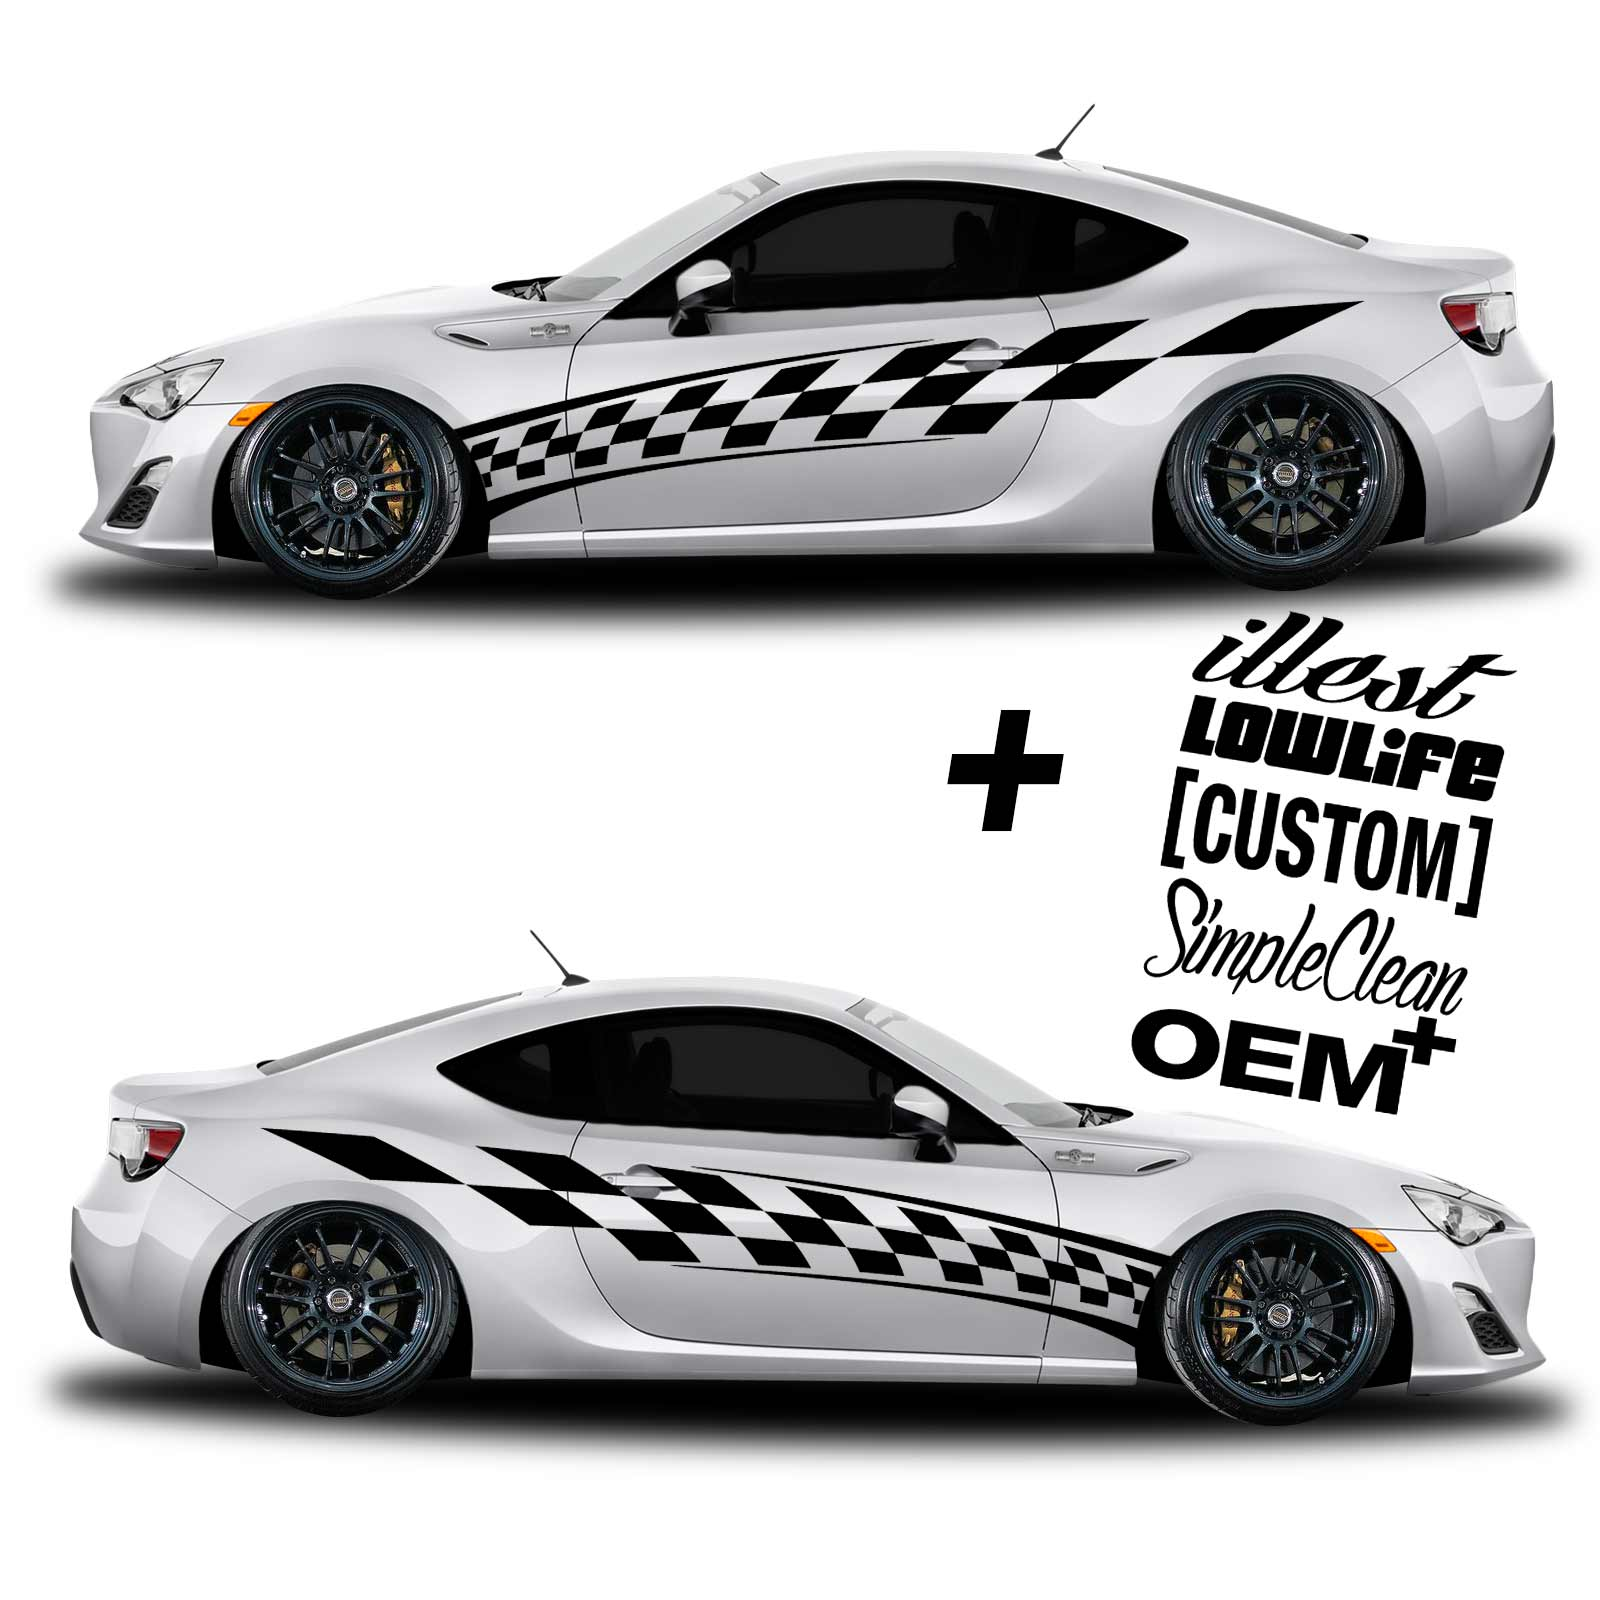 Car Graphic Racing Flag Free Decals Shinegraffixcom - Custom vinyl graphics for cars